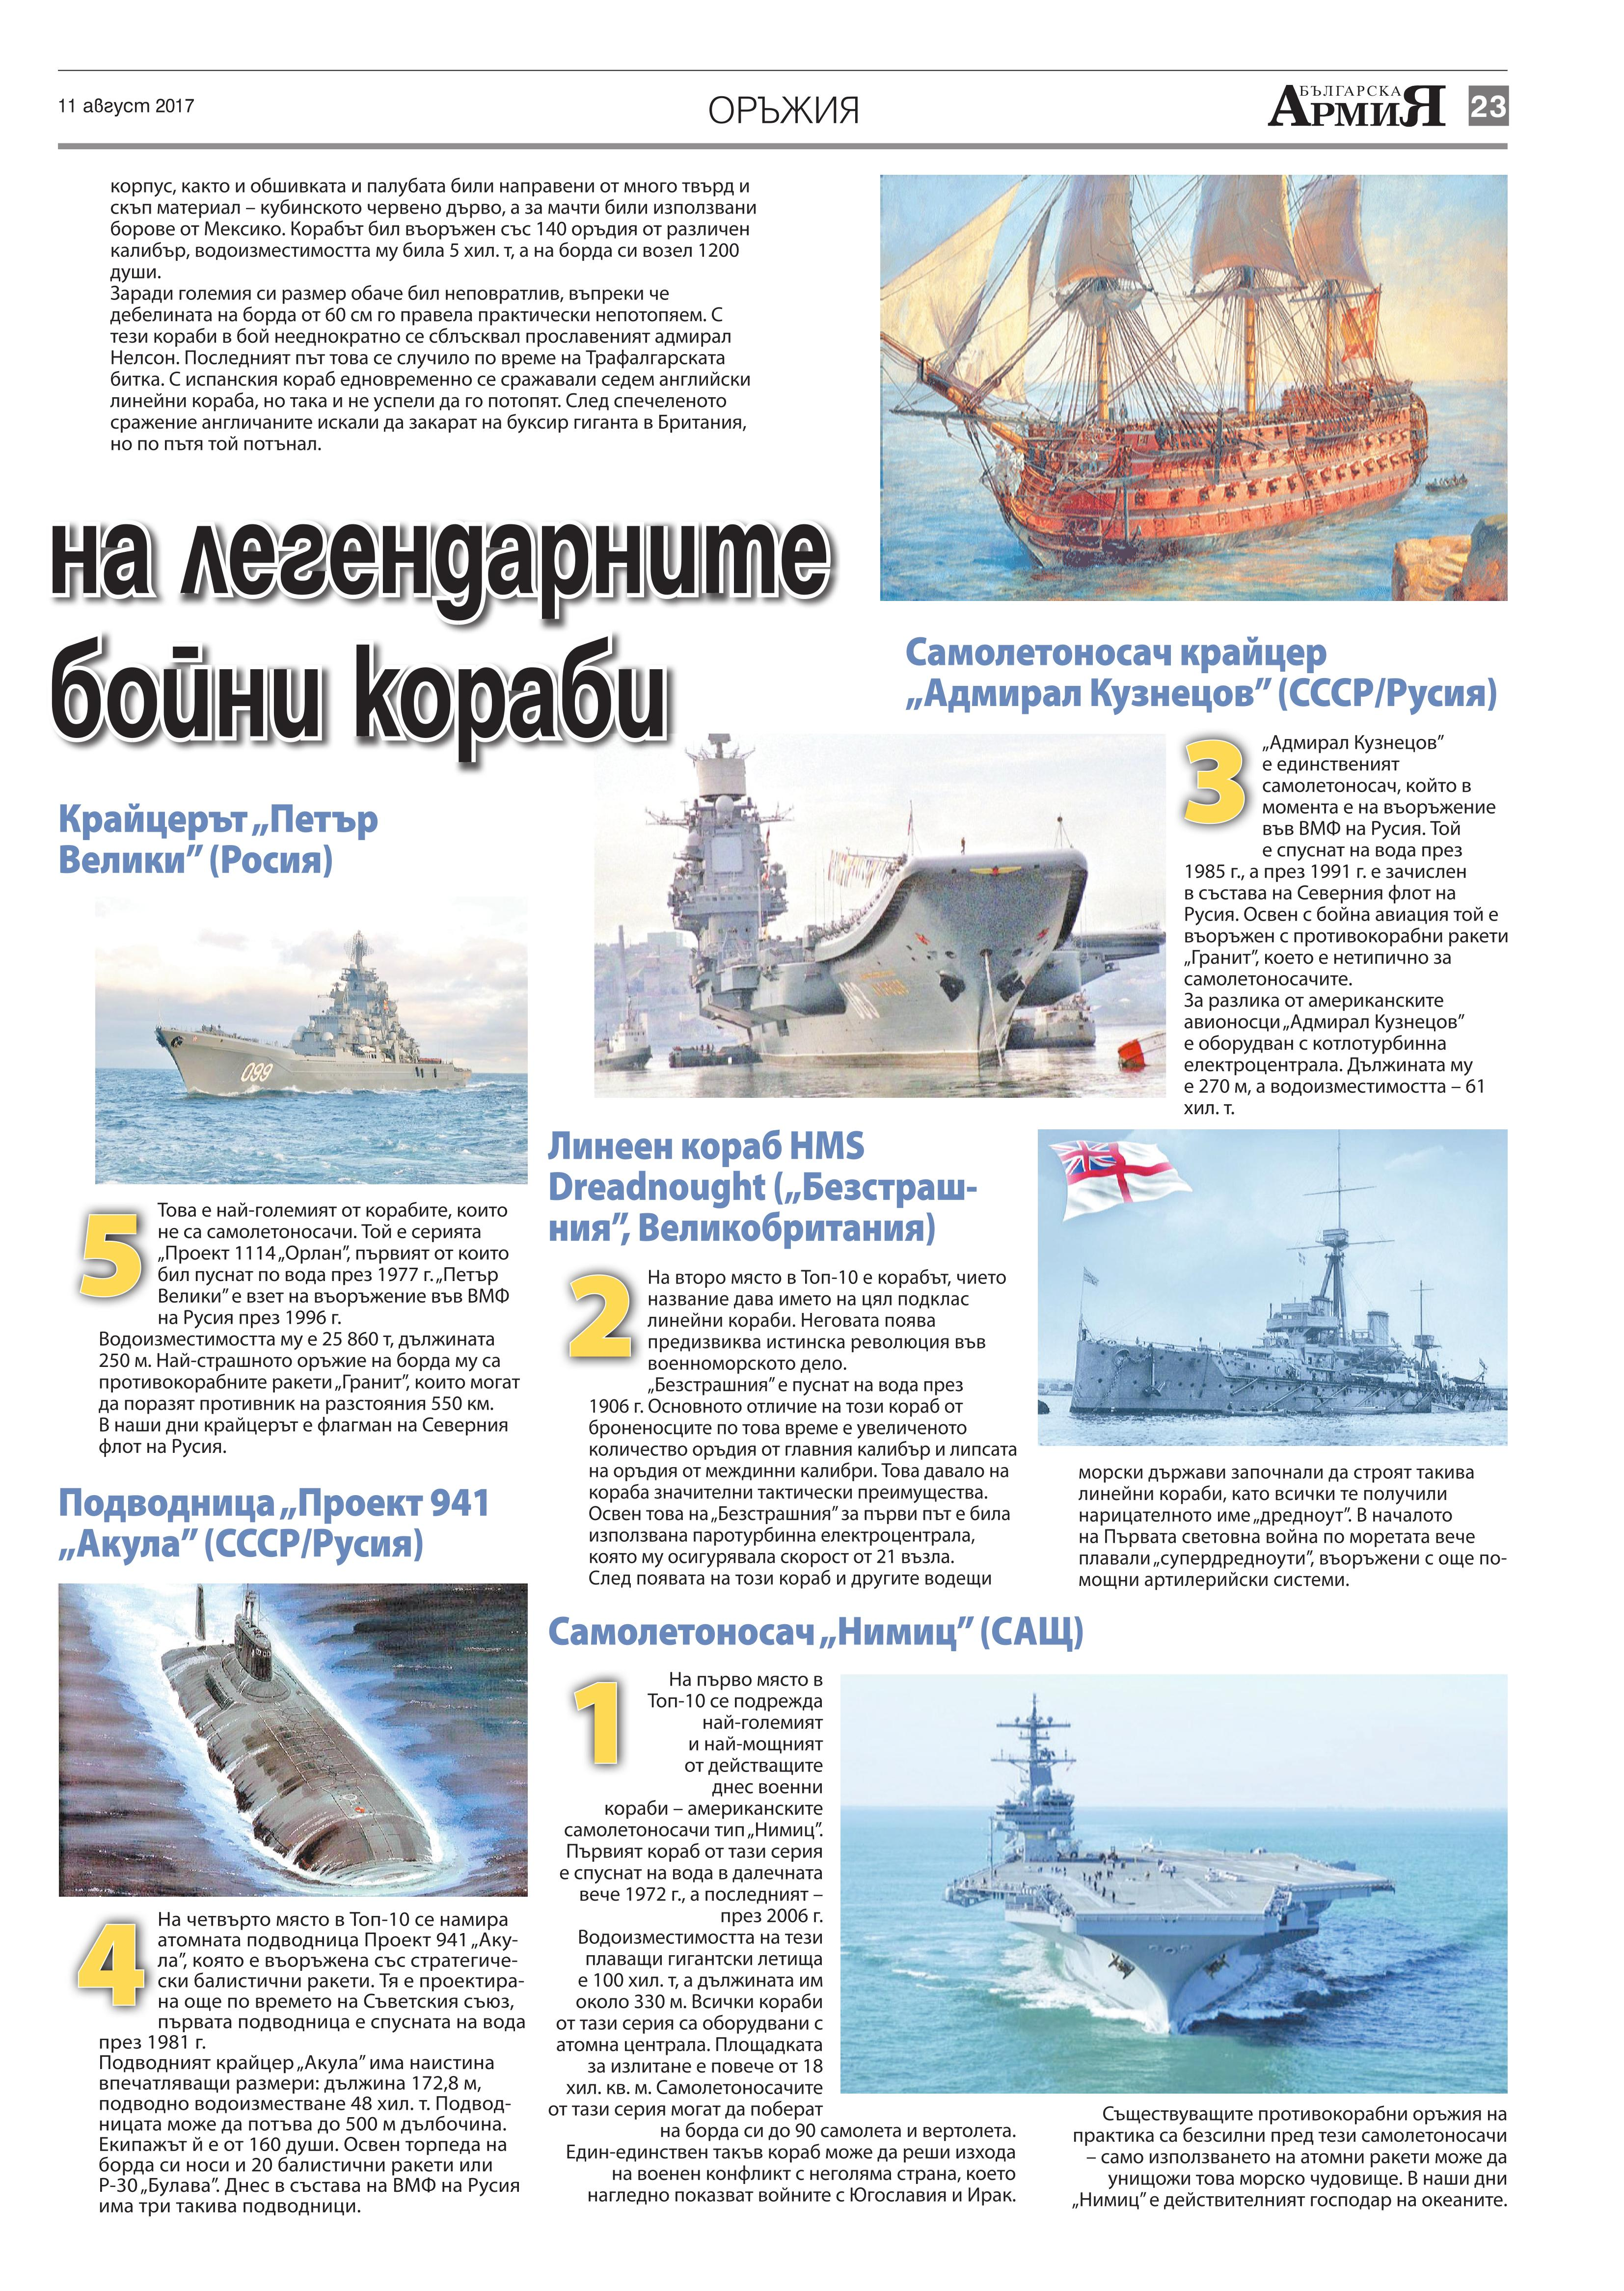 http://armymedia.bg/wp-content/uploads/2015/06/23.page1_-28.jpg